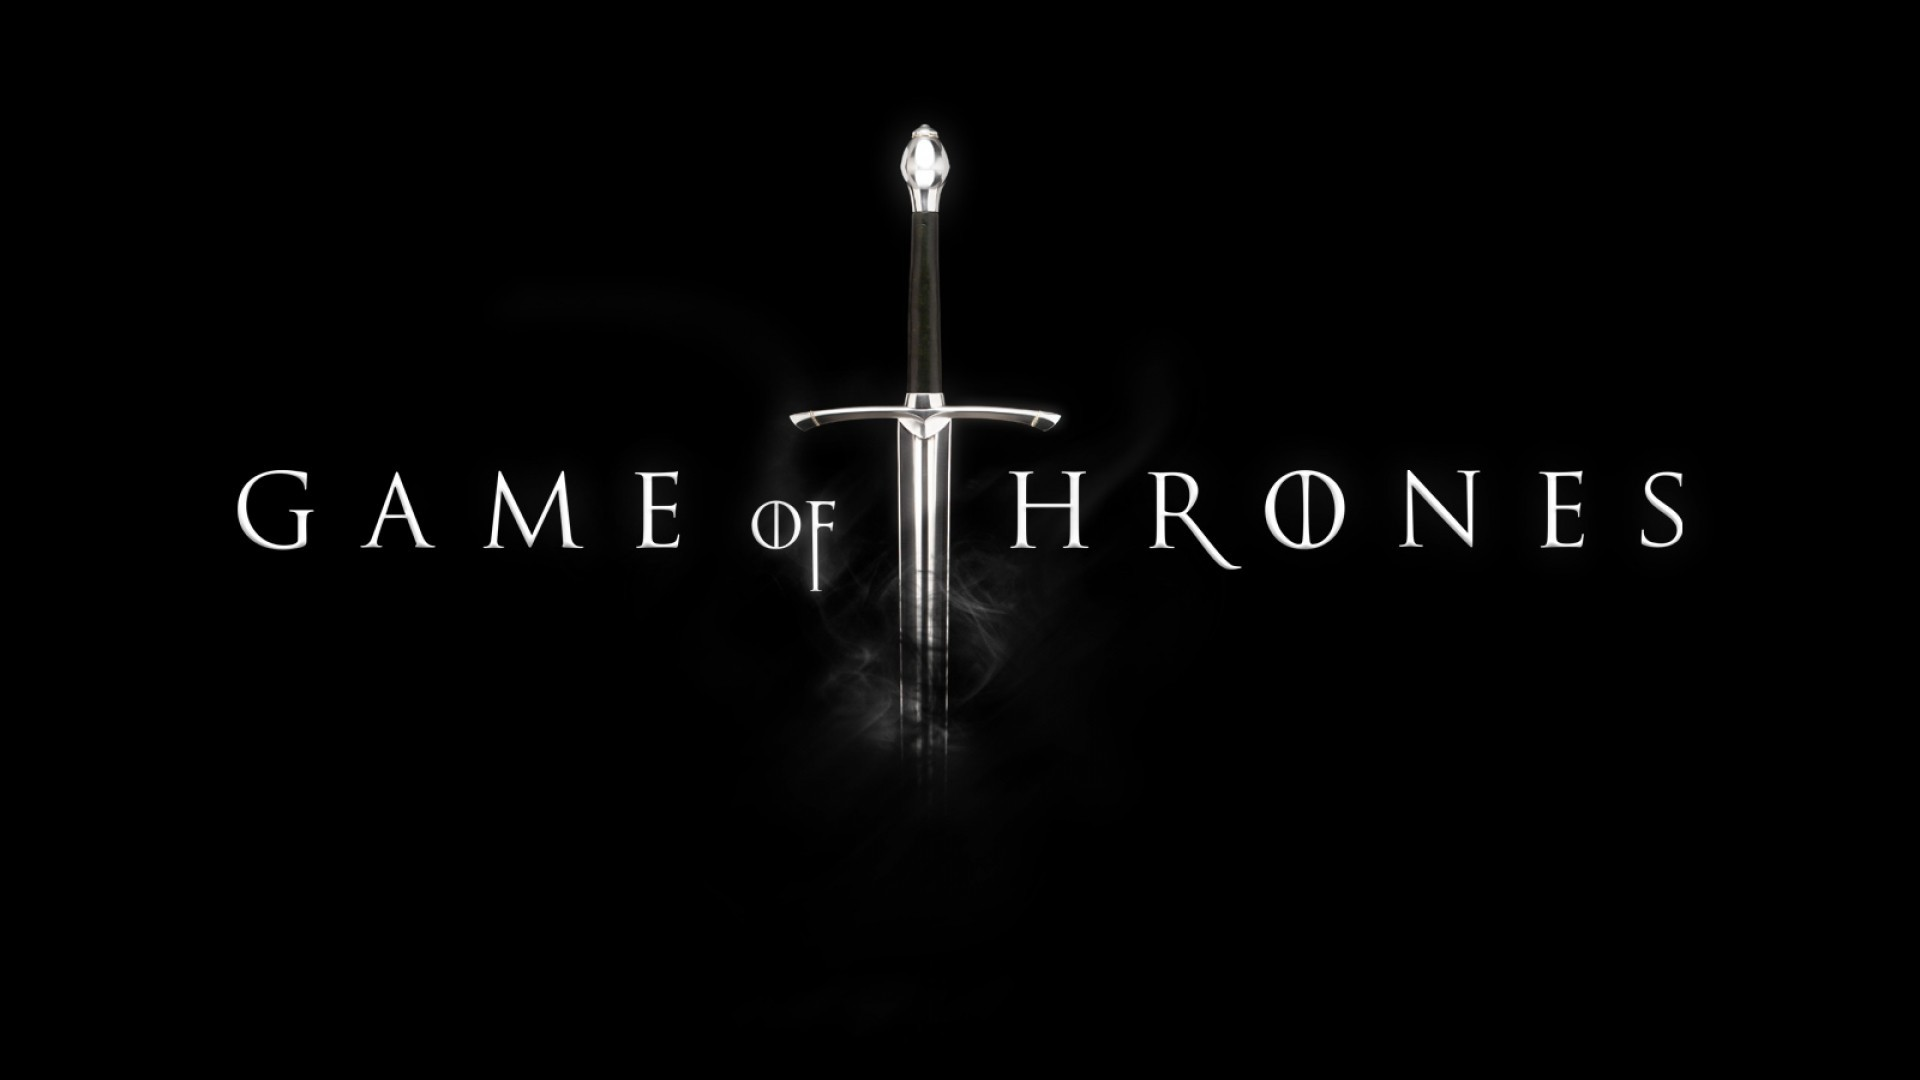 Game-of-Thrones-¡-HD-Megapost-1920x1080-wallpaper-wp340238